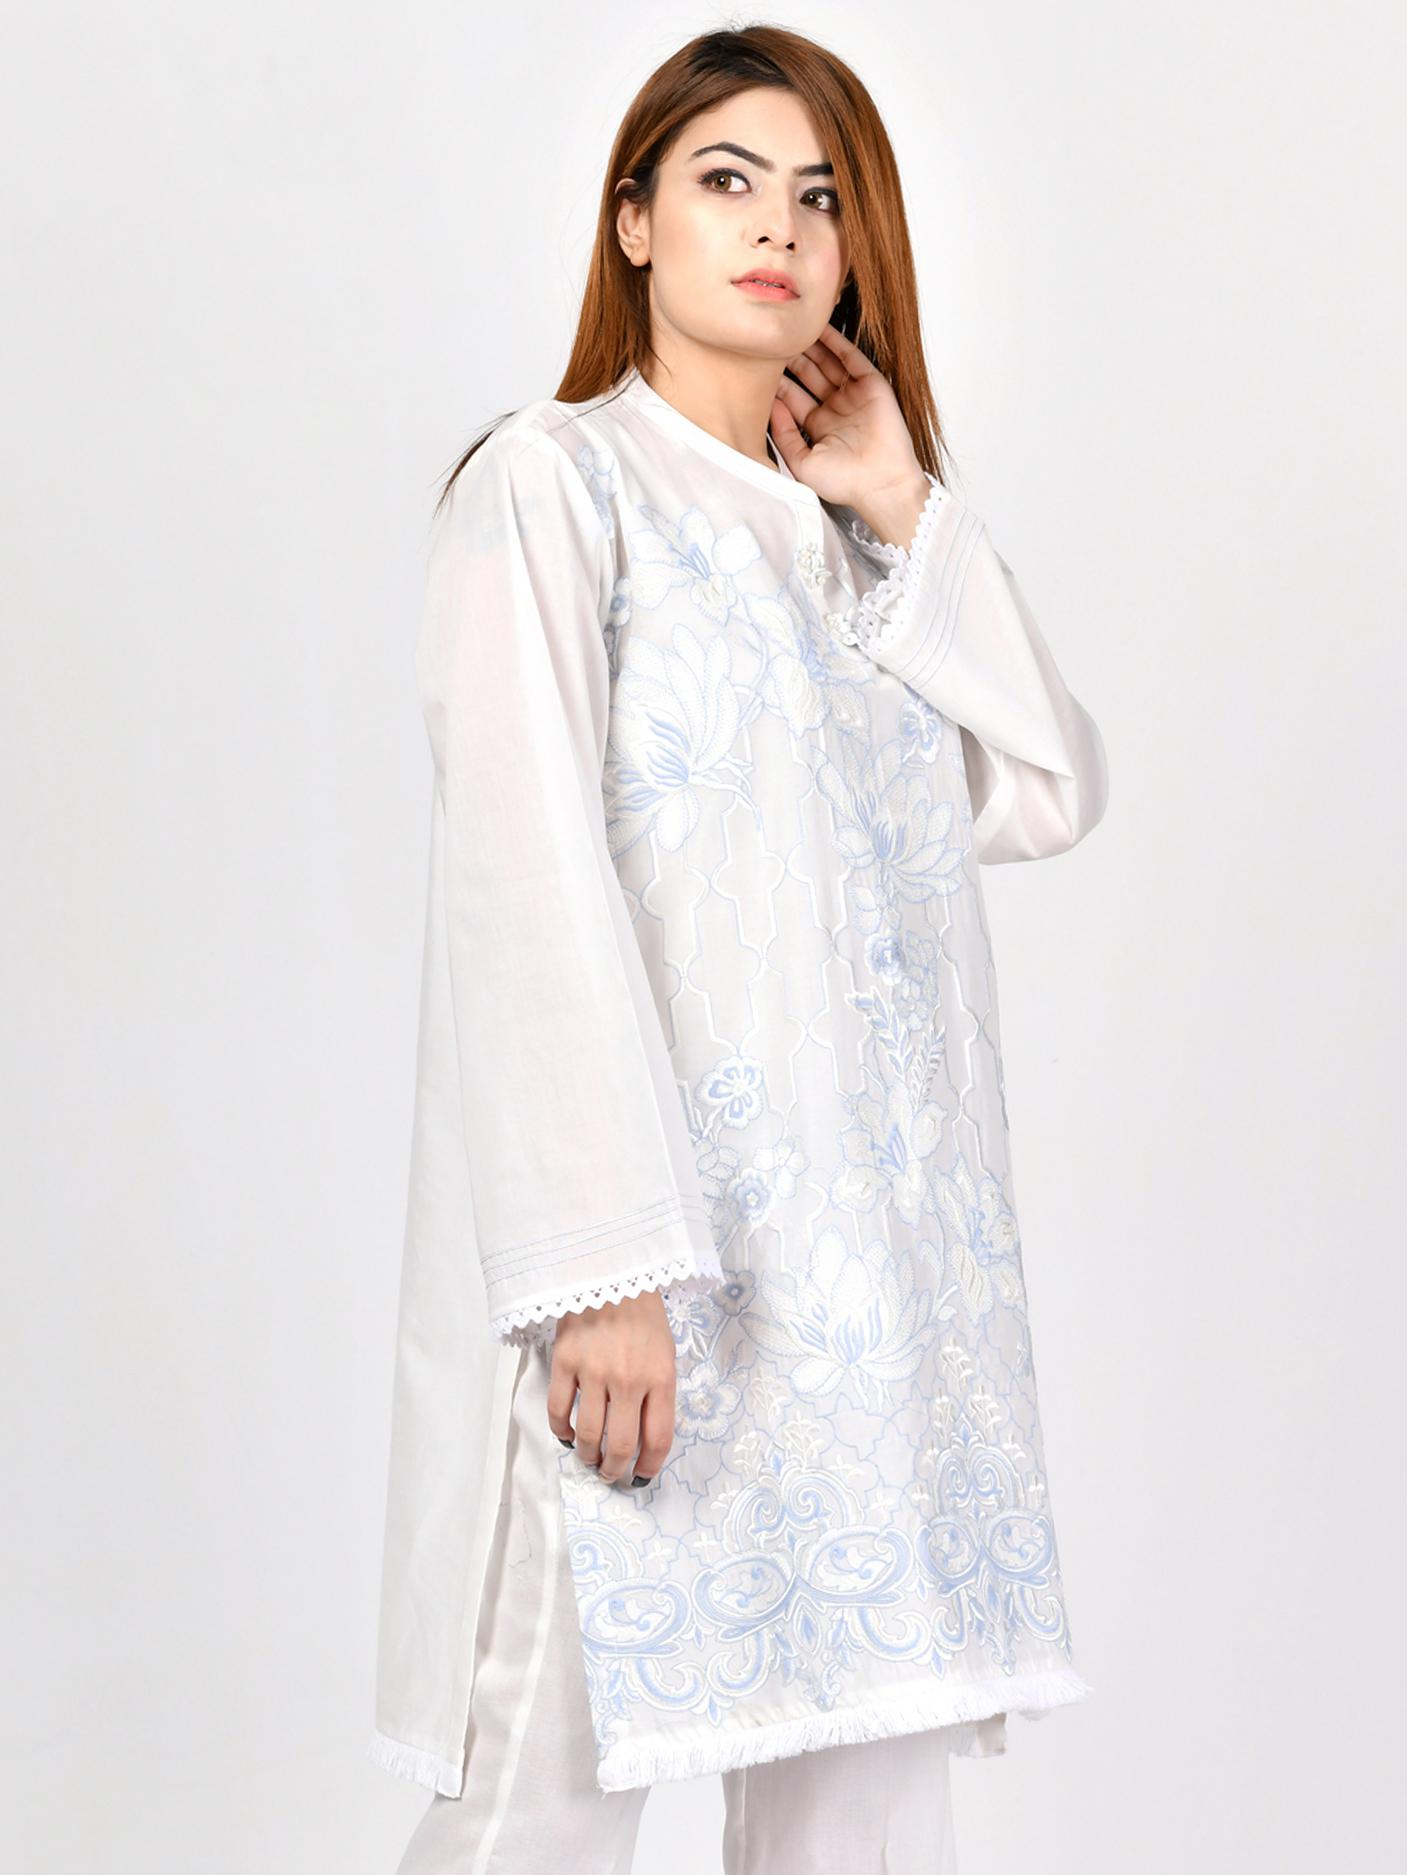 LimeLight Stitched White  1 Pcs Embroidered Lawn Shirt For Women P2077-SLL-WHT